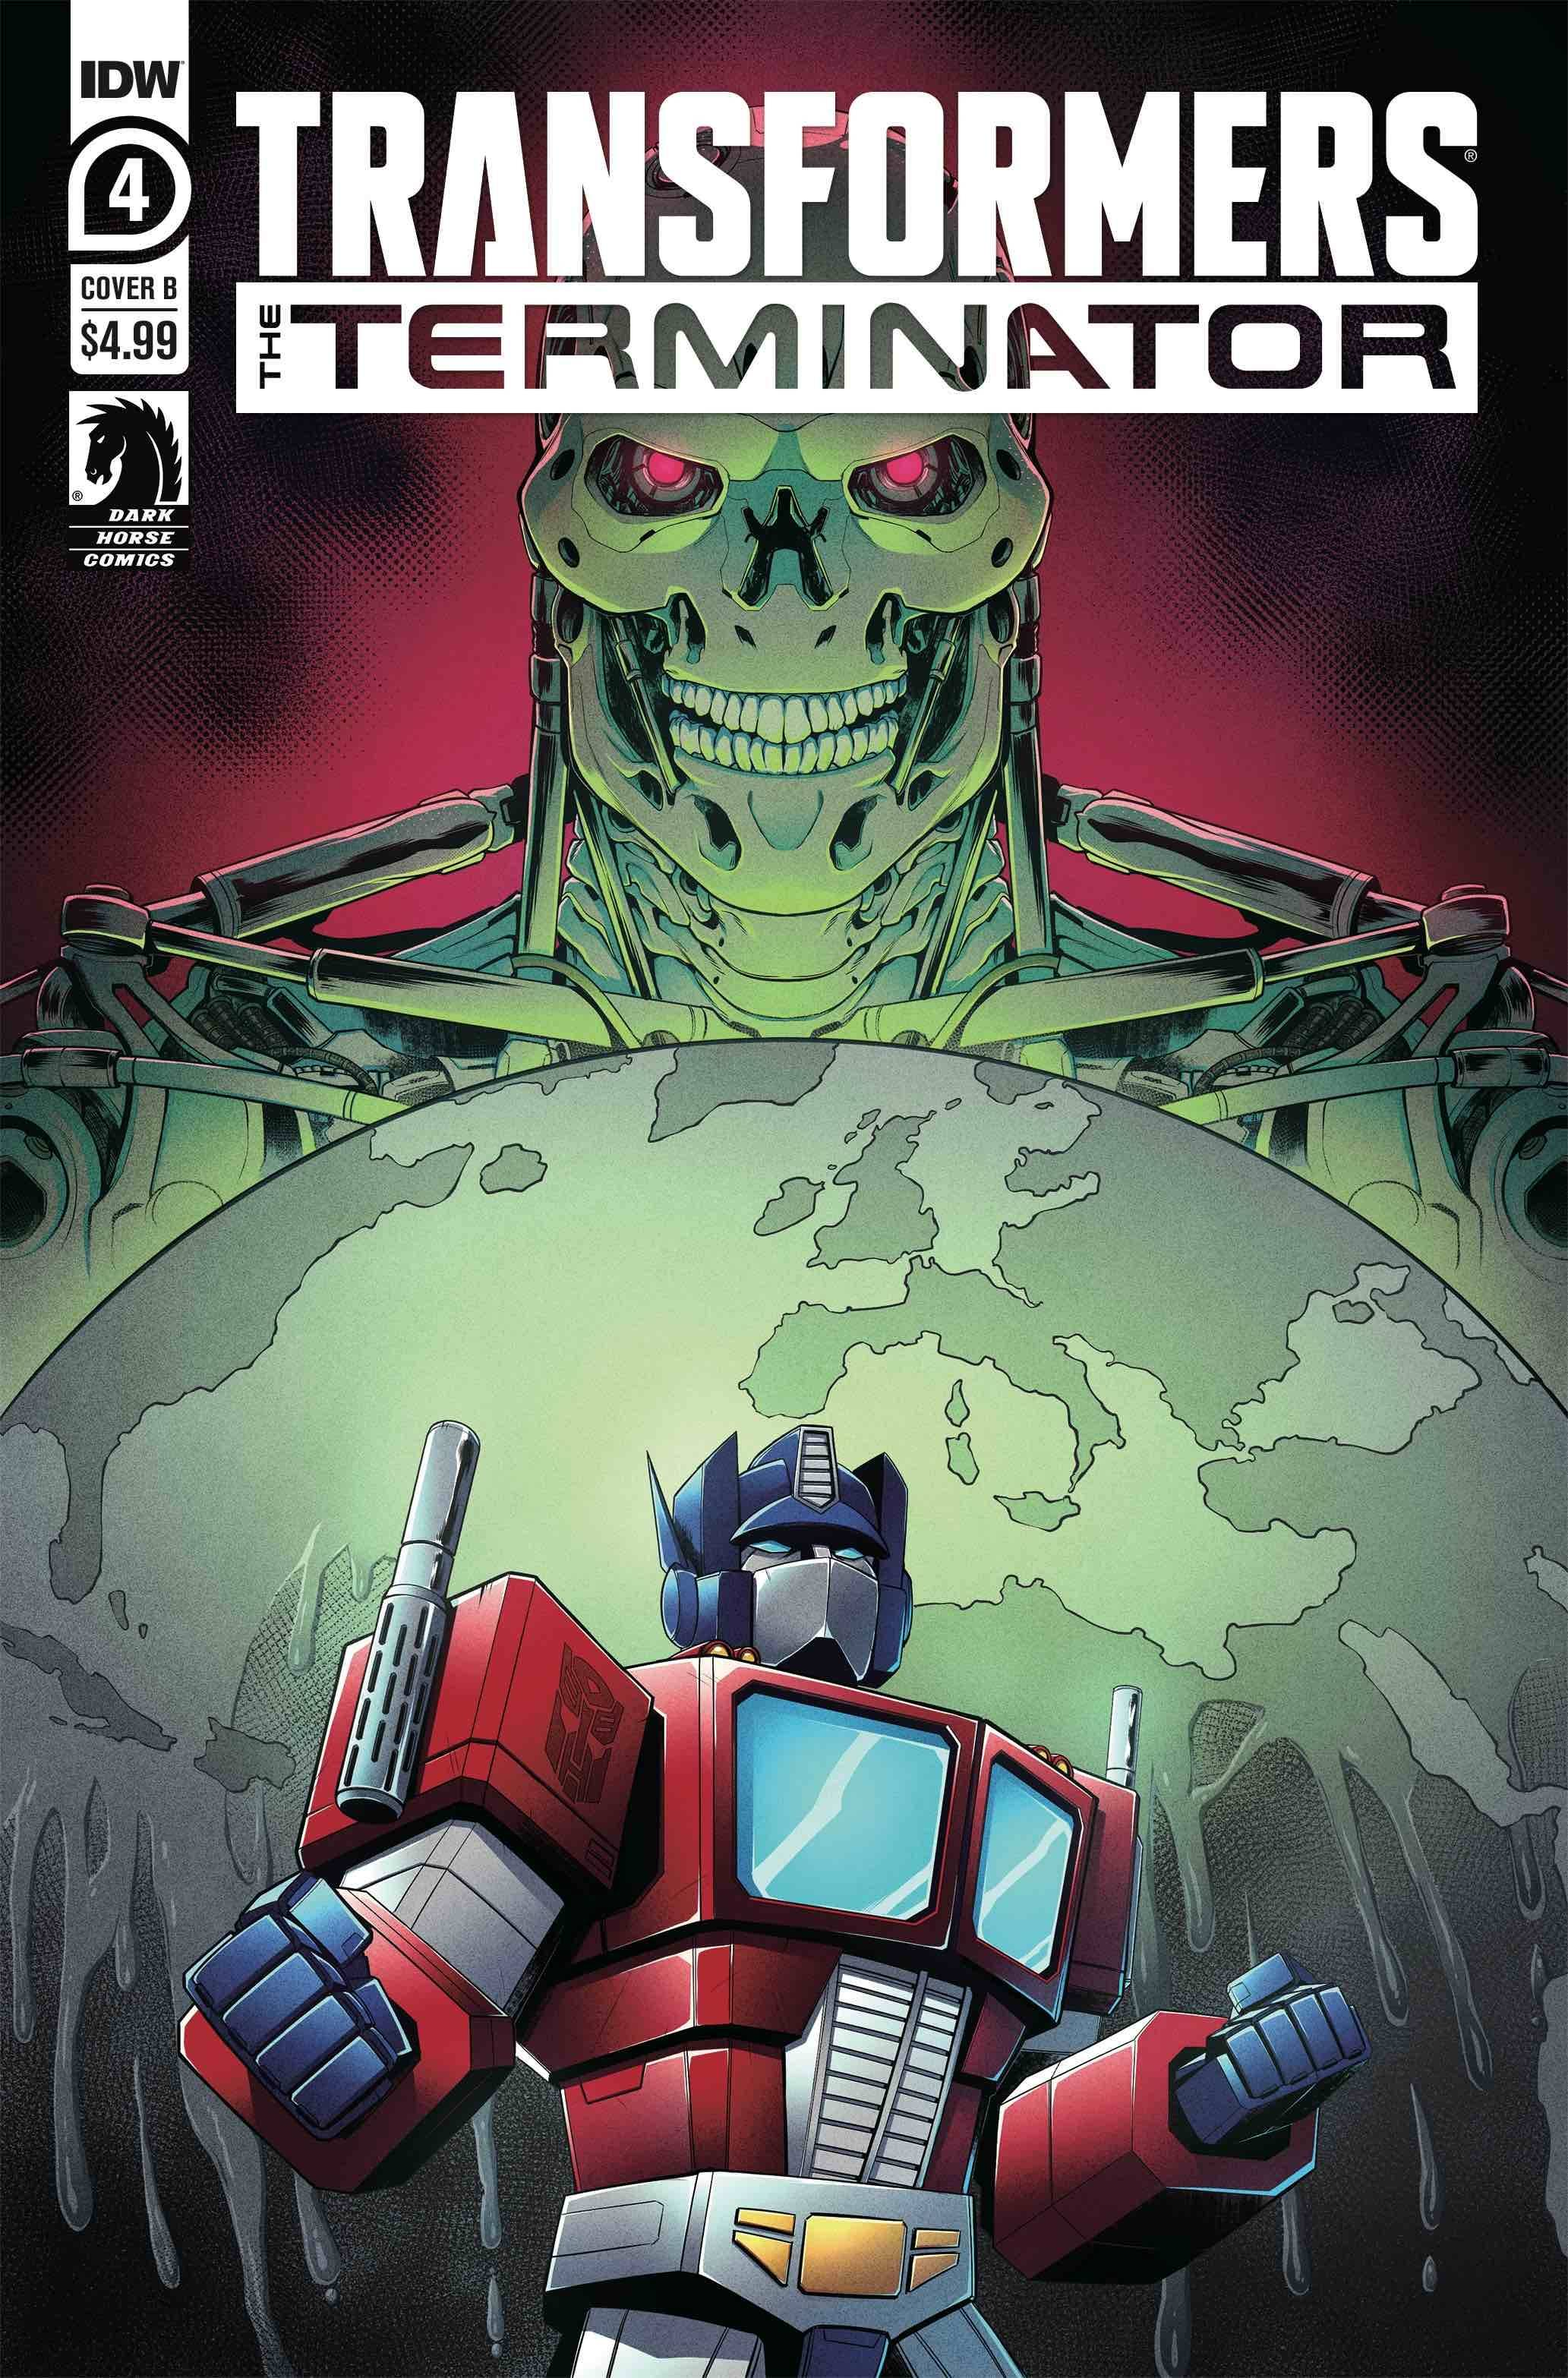 TRANSFORMERS VS TERMINATOR #4 (OF 4) CVR B MONTFORT